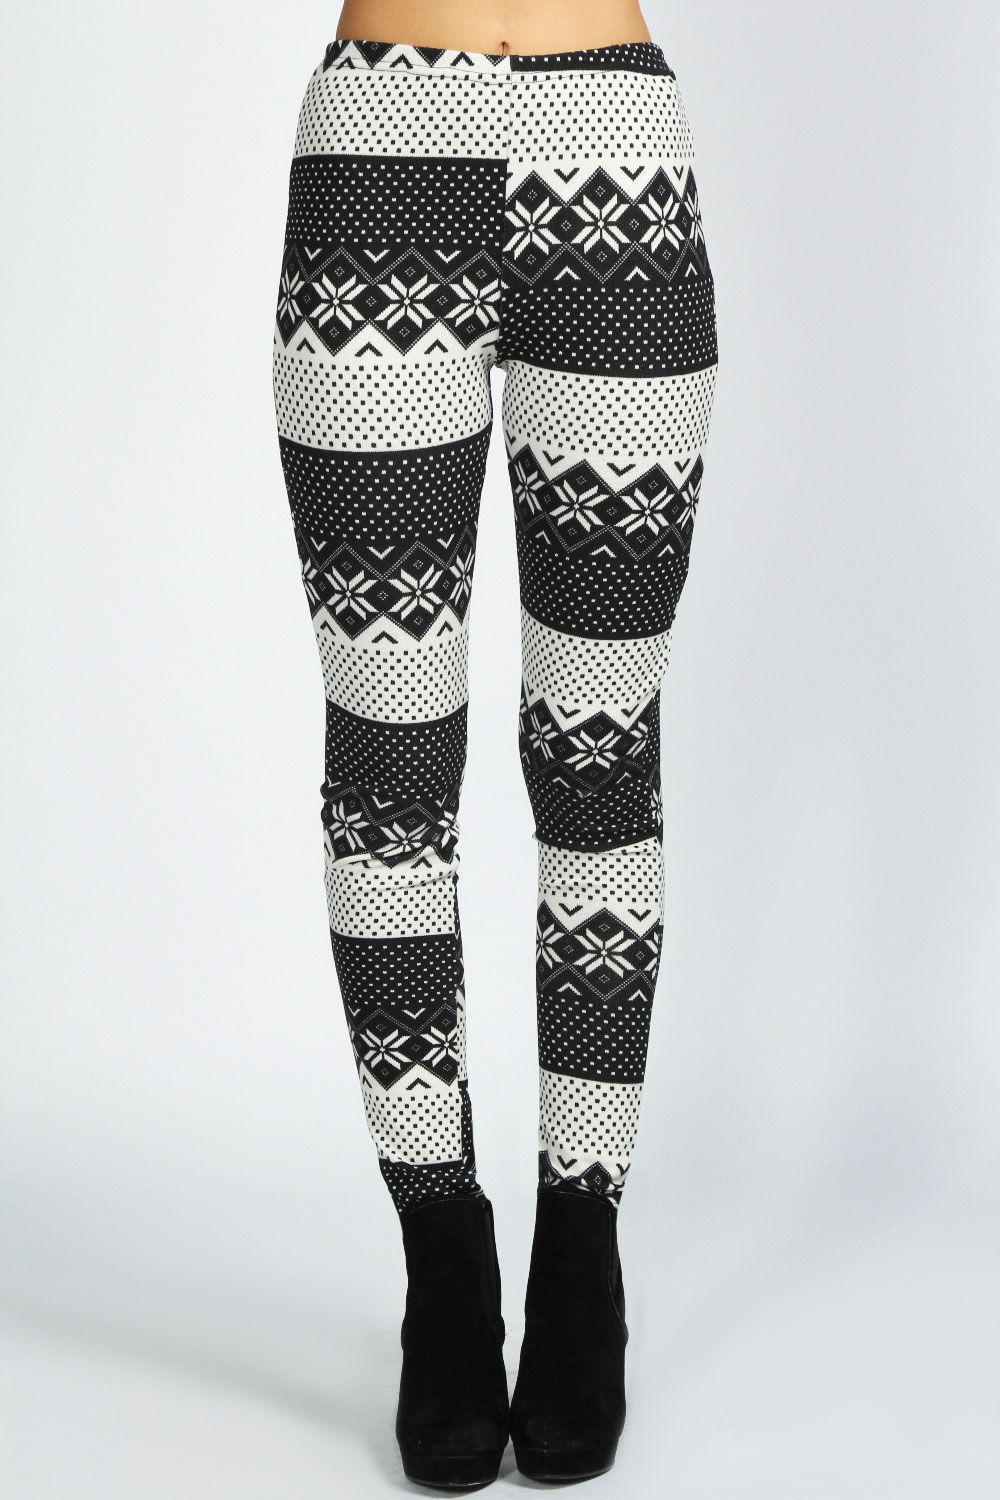 Boohoo-Roxy-Stricken-Fairisle-Drucken-Leggings